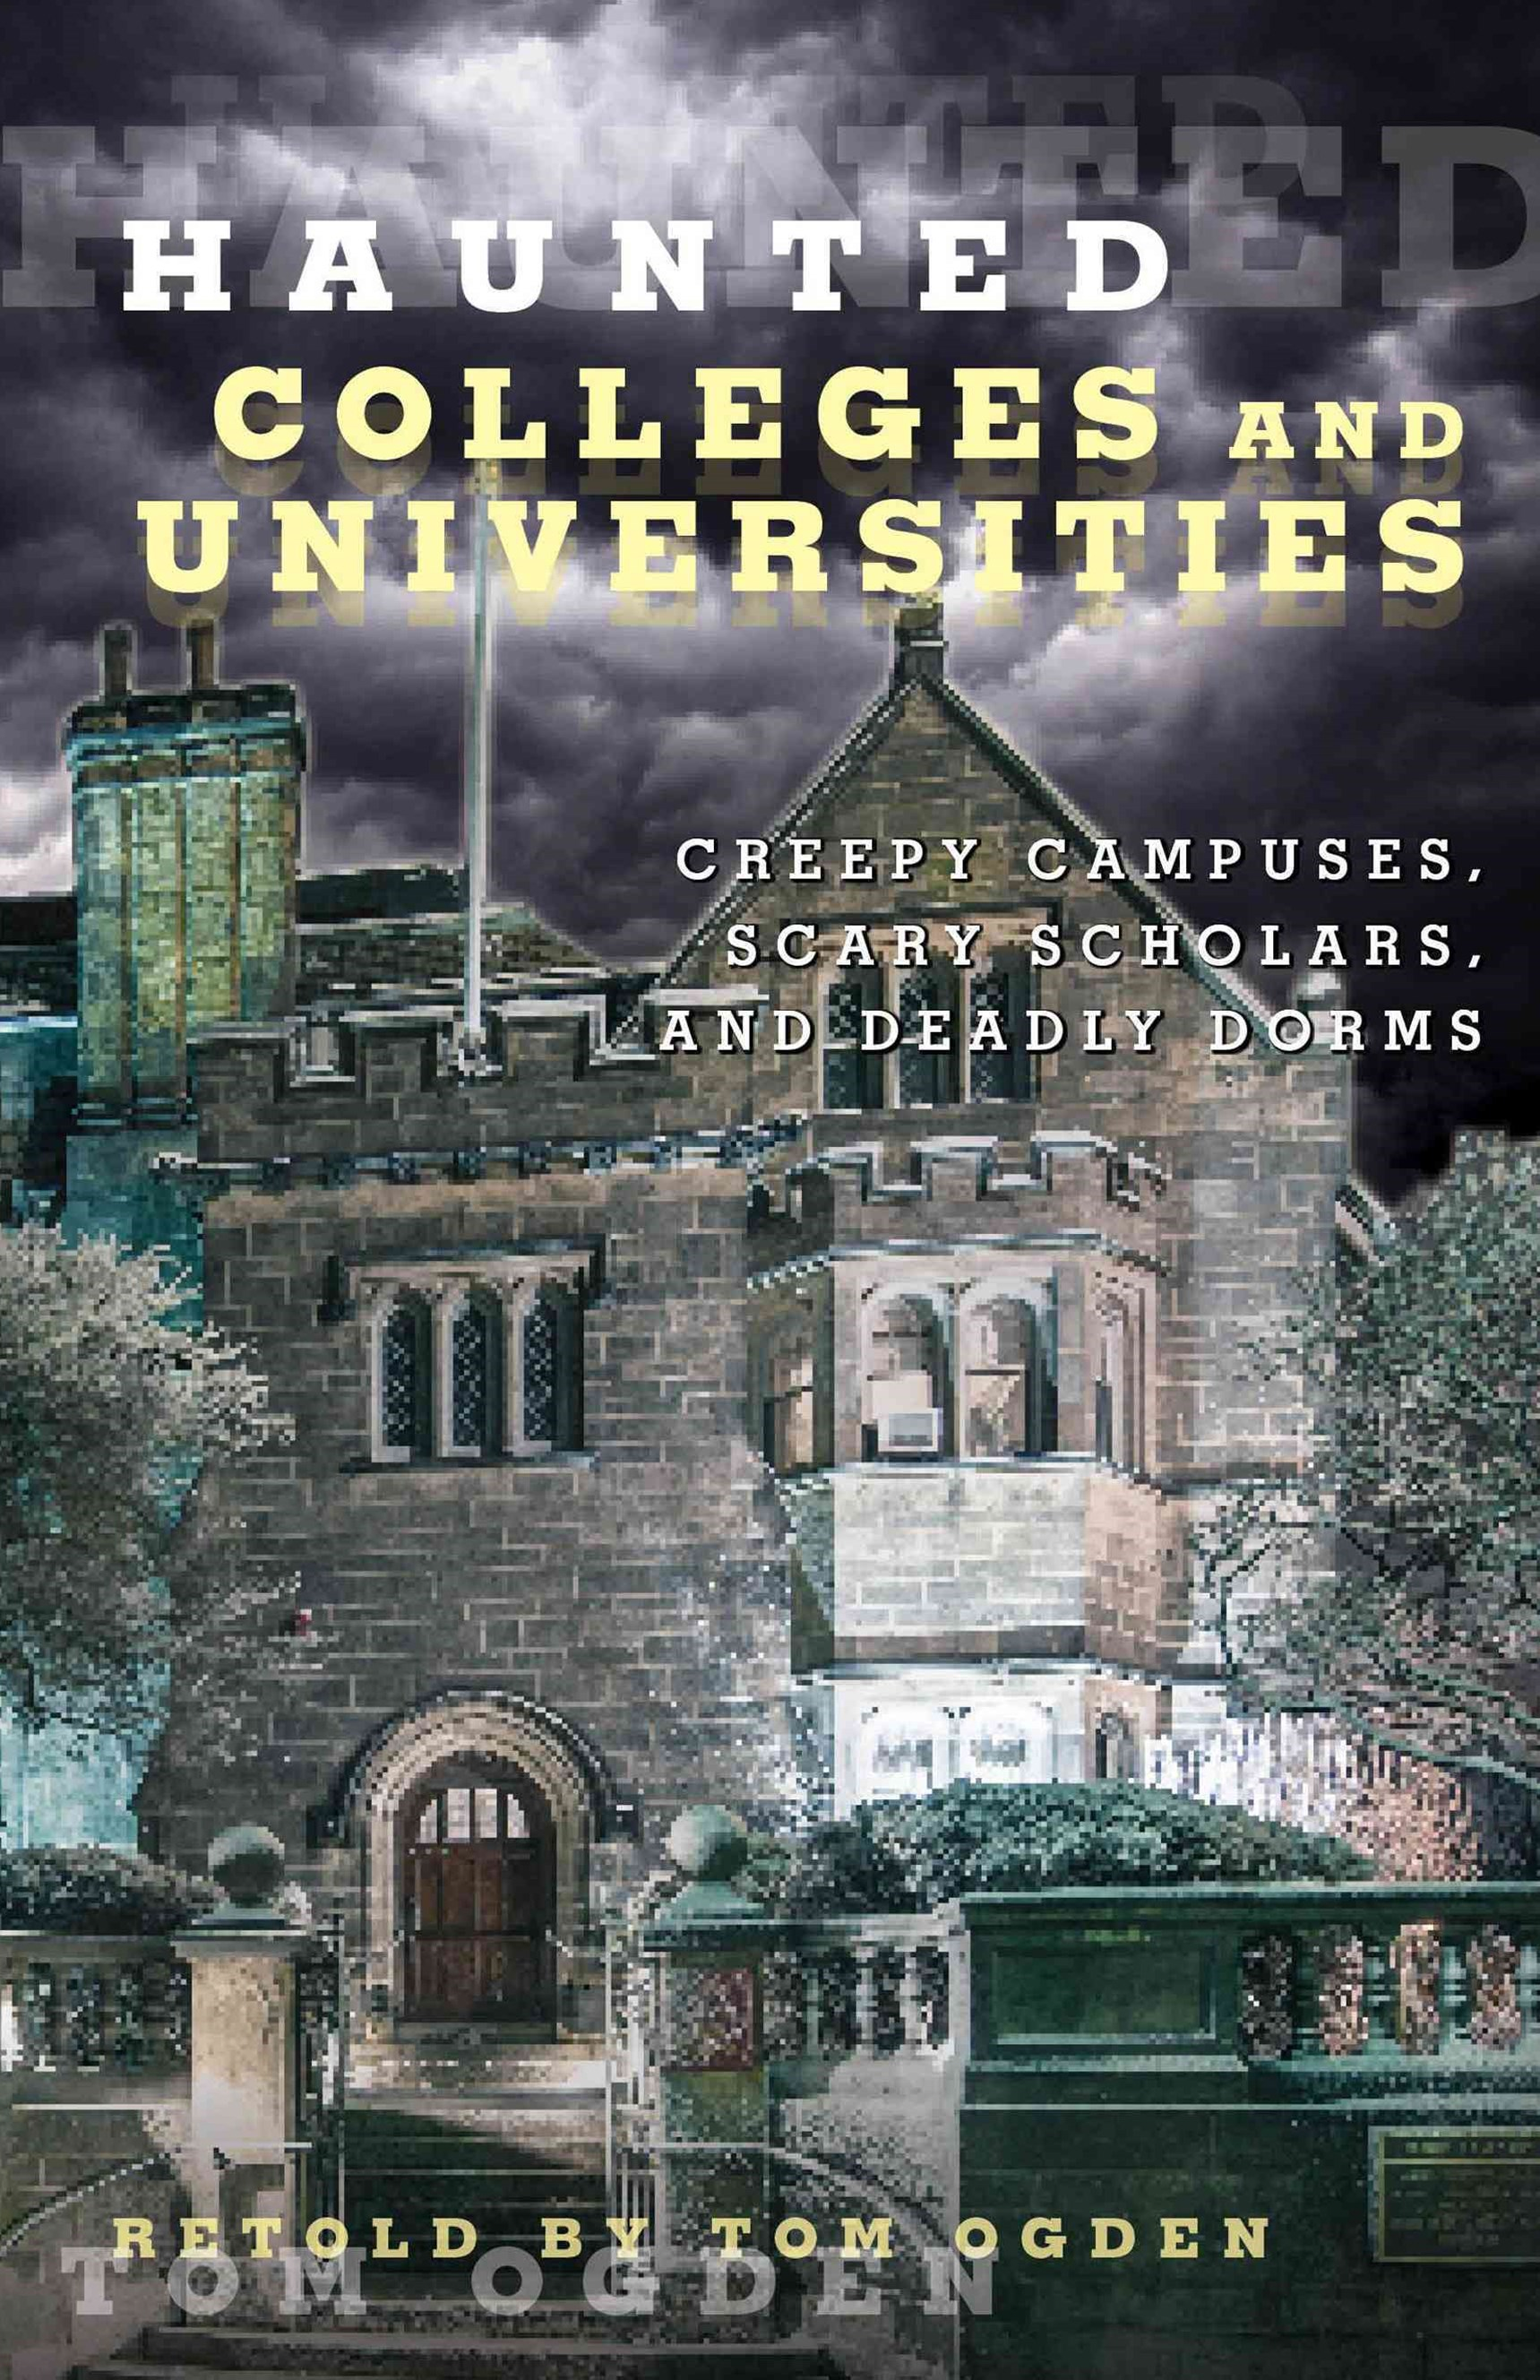 Haunted Colleges and Universities